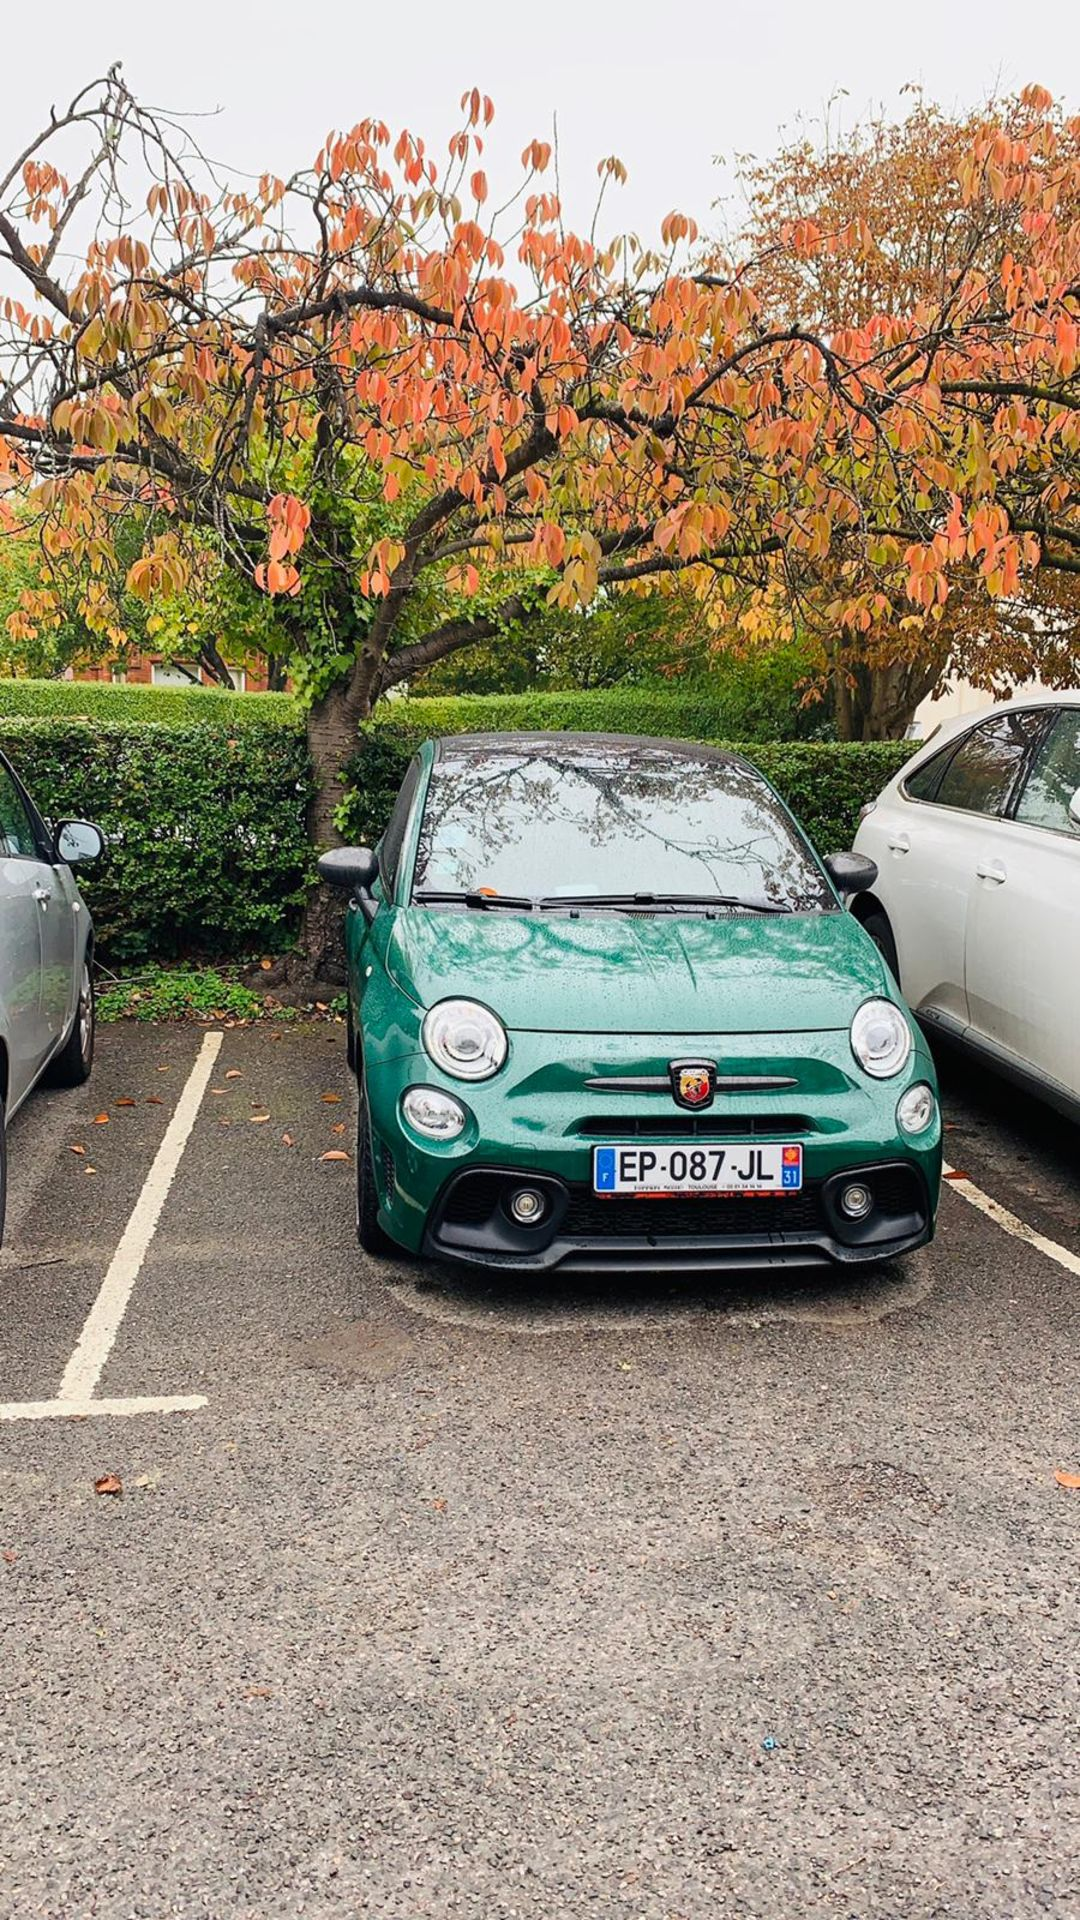 ABARTH 595 COMP 2016, 10,000 MILES NO ACCIDENTS, CUSTOM EXHAUST, WRAPPED DARK GREEN, FRENCH PLATES